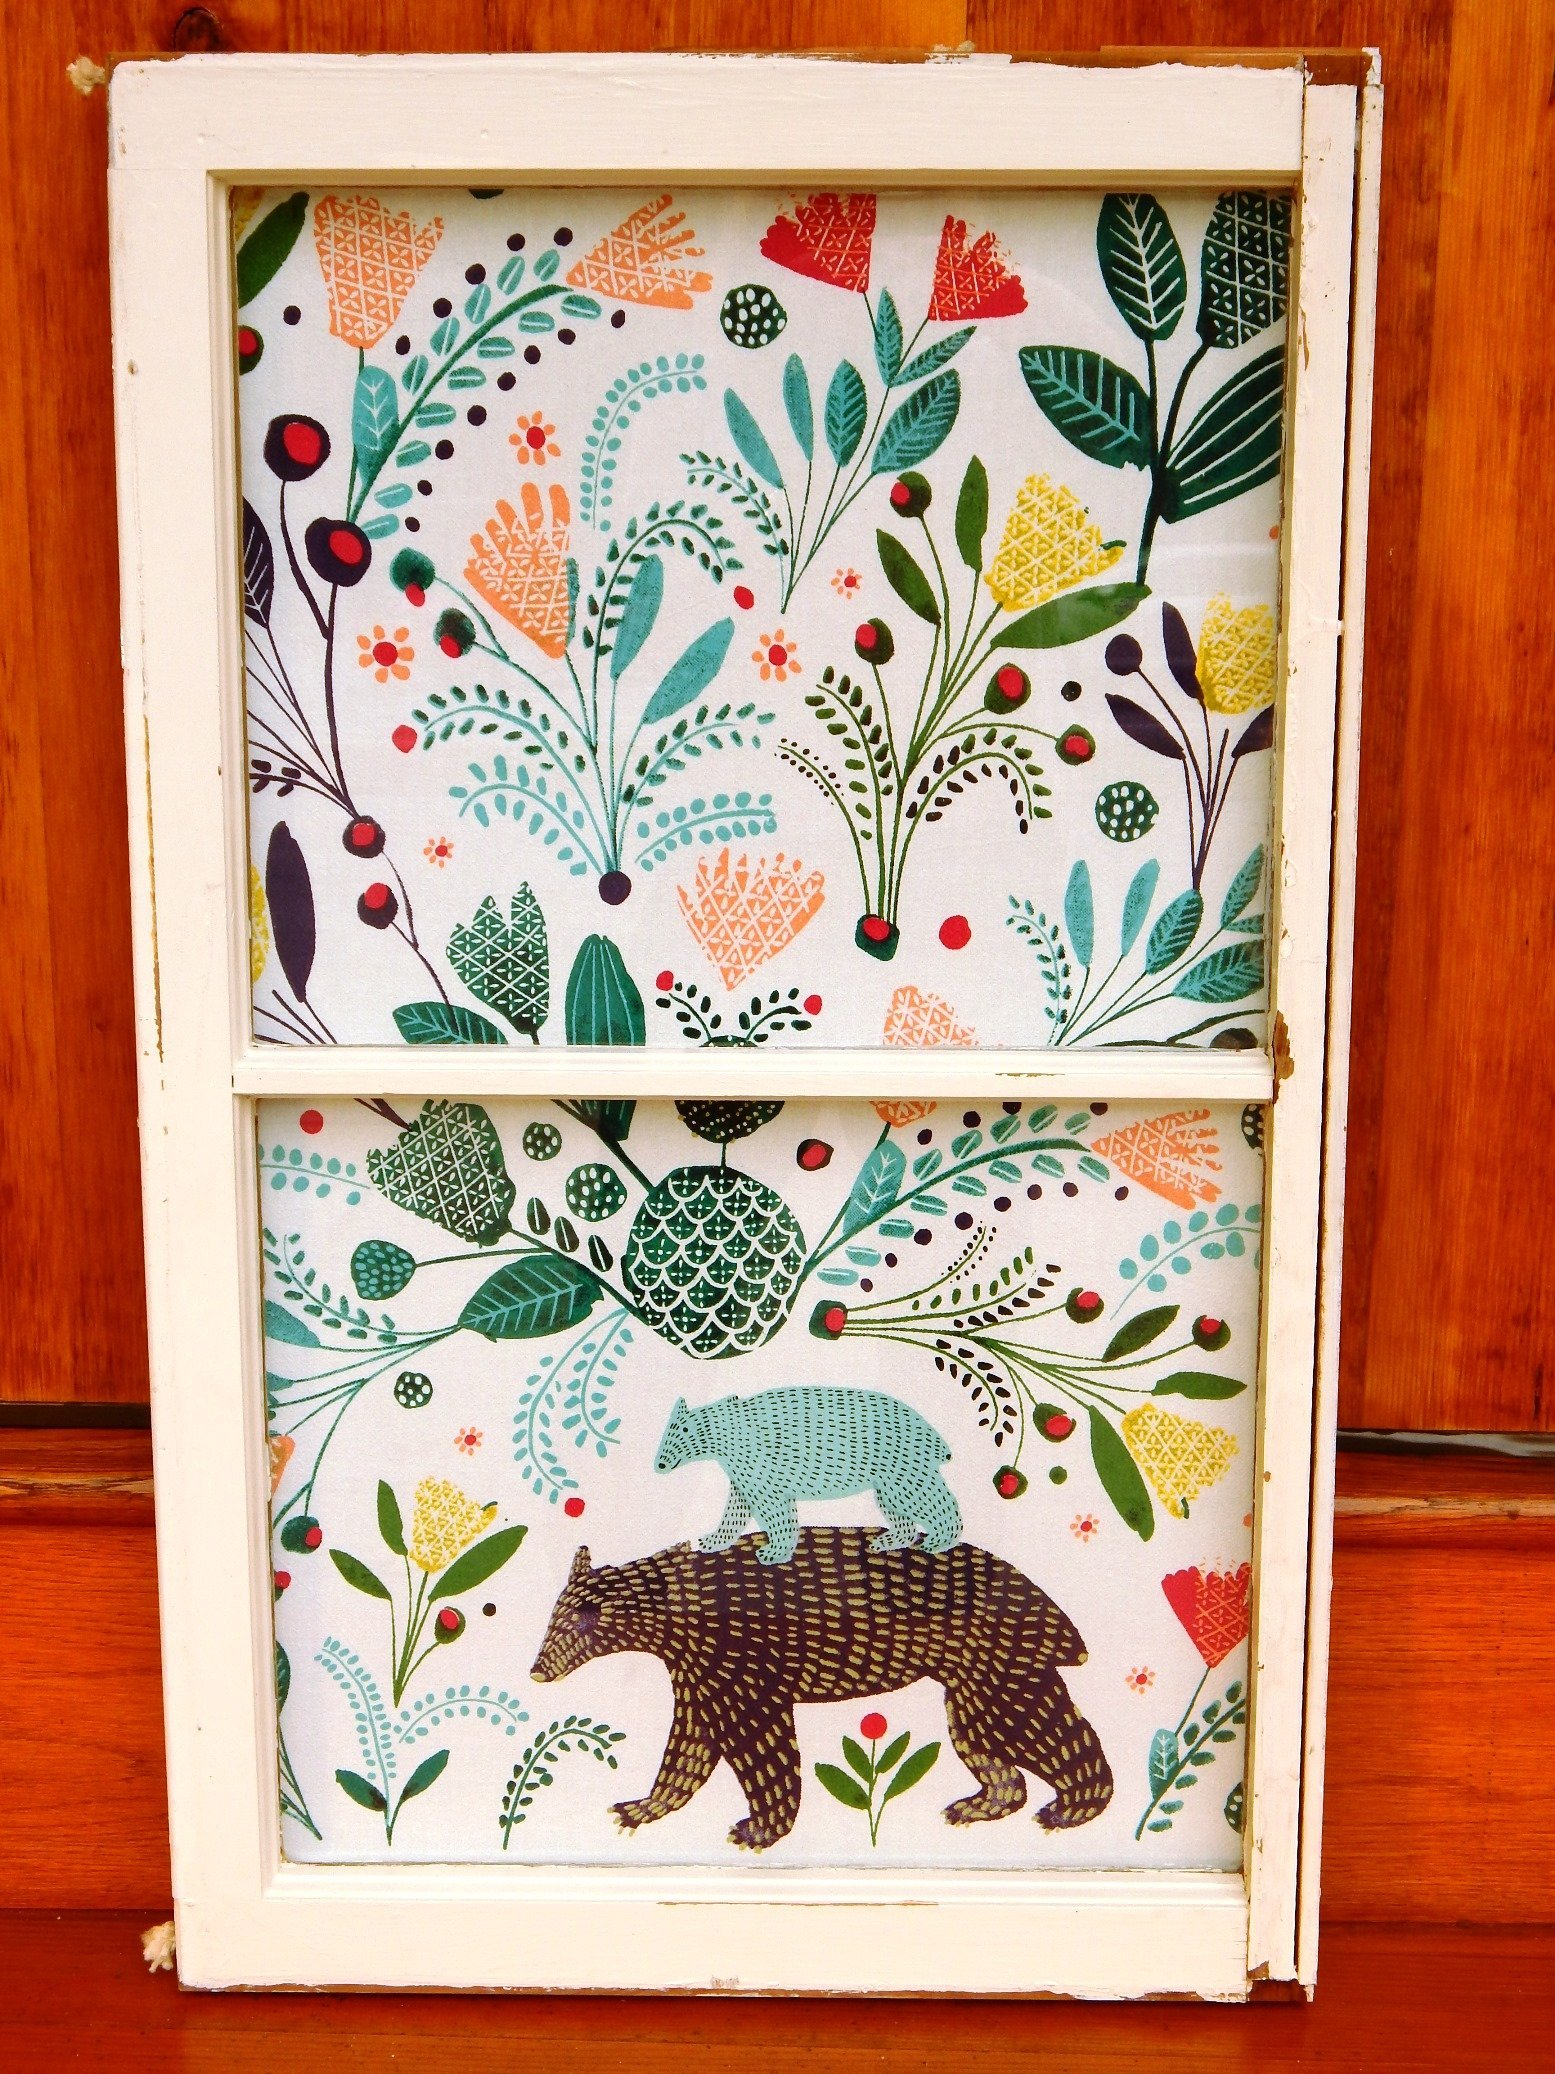 BEARY BEARY HAPPY--Mama & Baby Bear Amid the Colorful Woods-Fabric Backed Old Window-Original Unique Wall Art For Child's Room, Home Decor